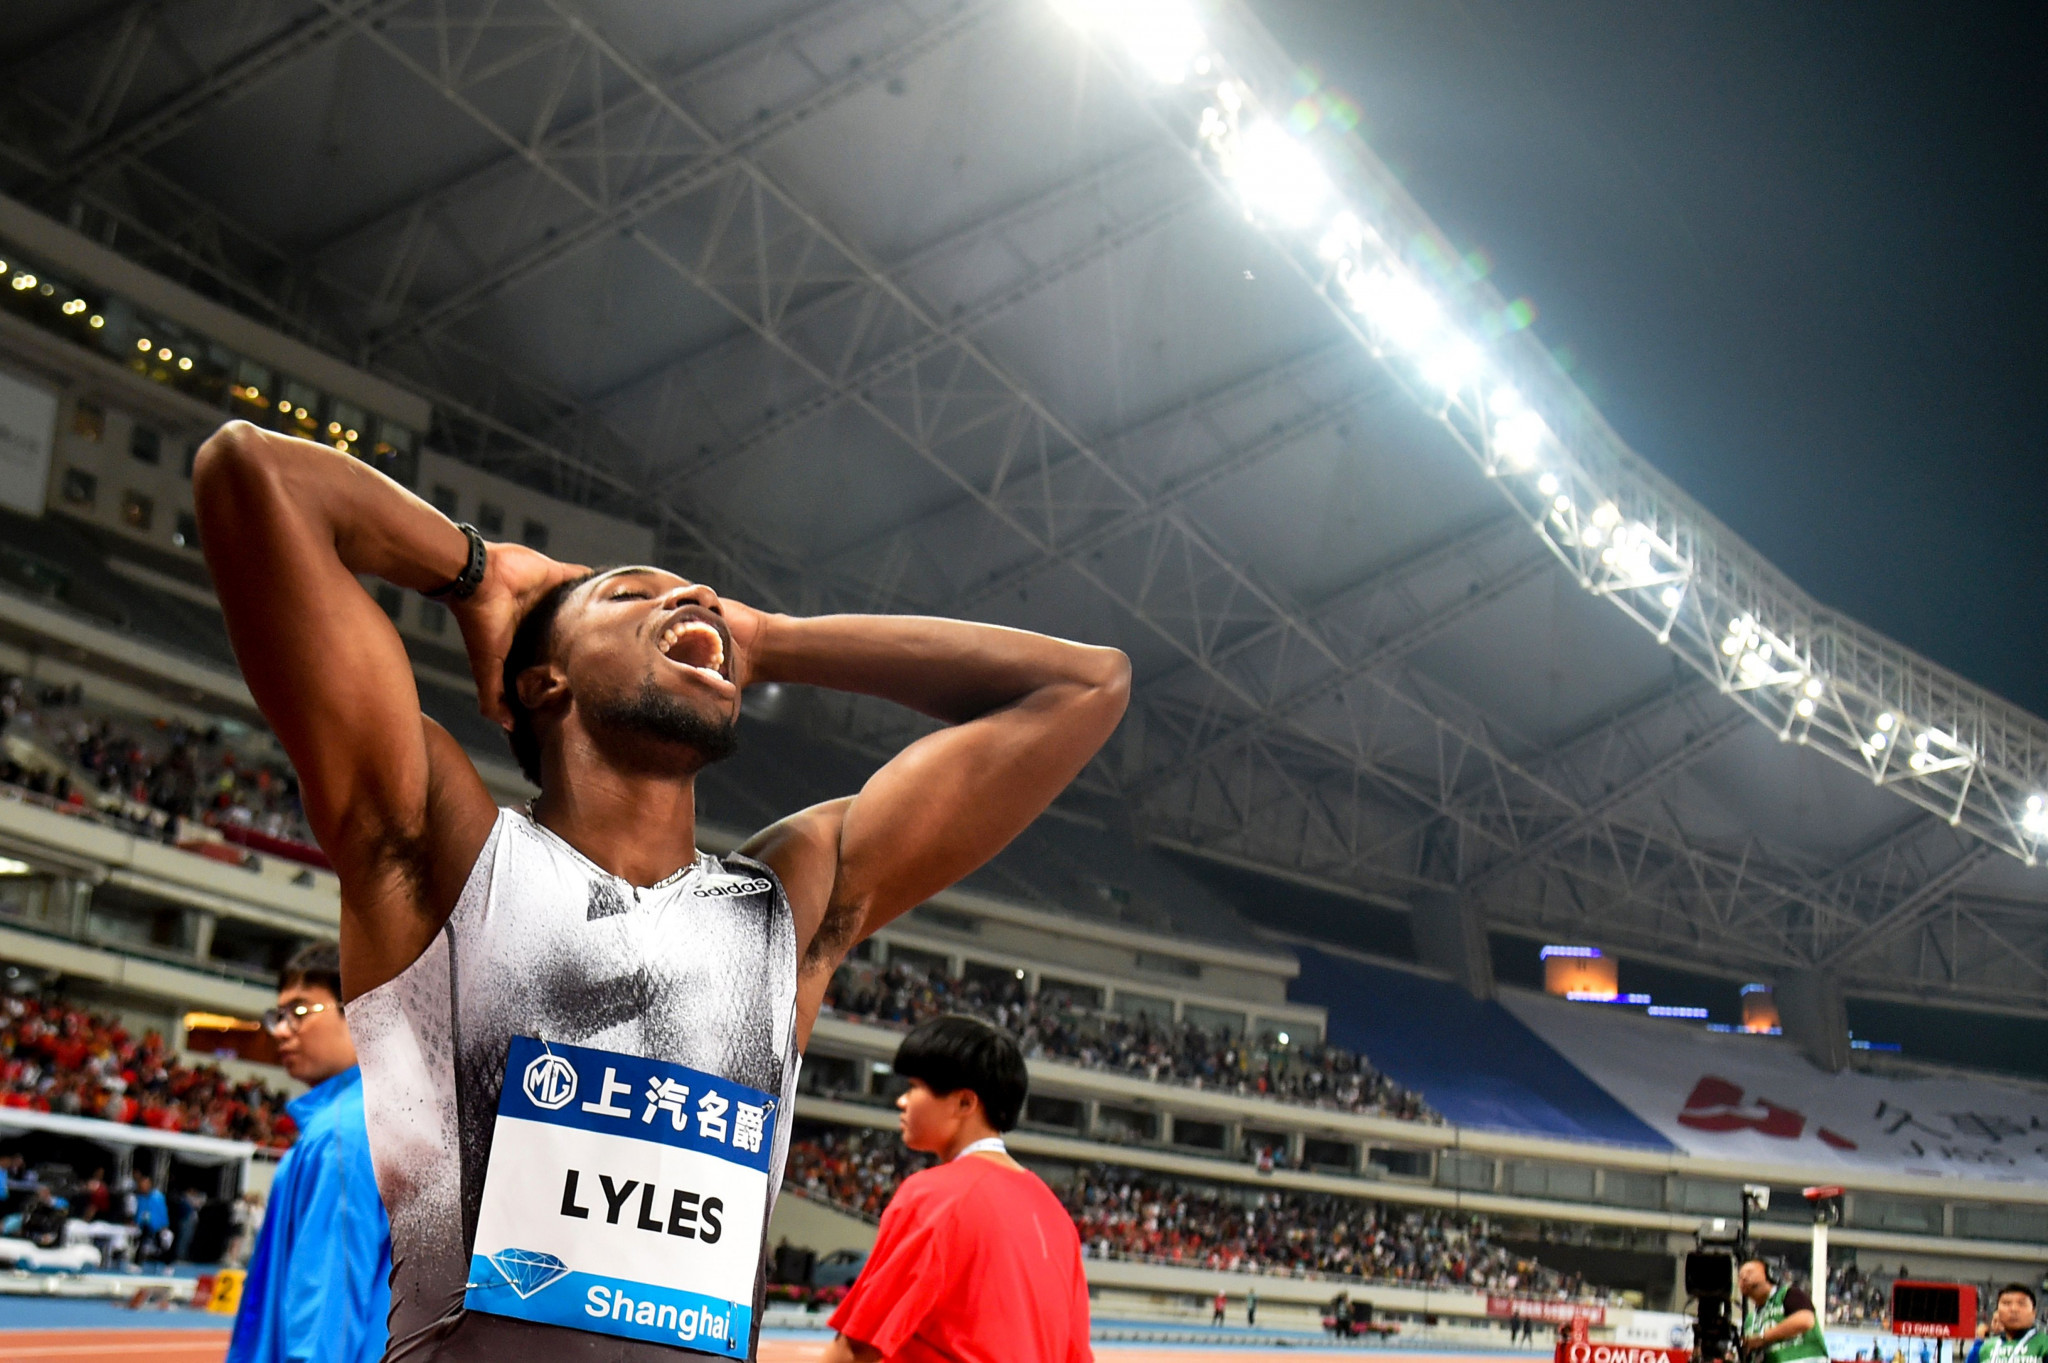 The Shanghai Diamond League event has been cancelled this year ©Getty Images